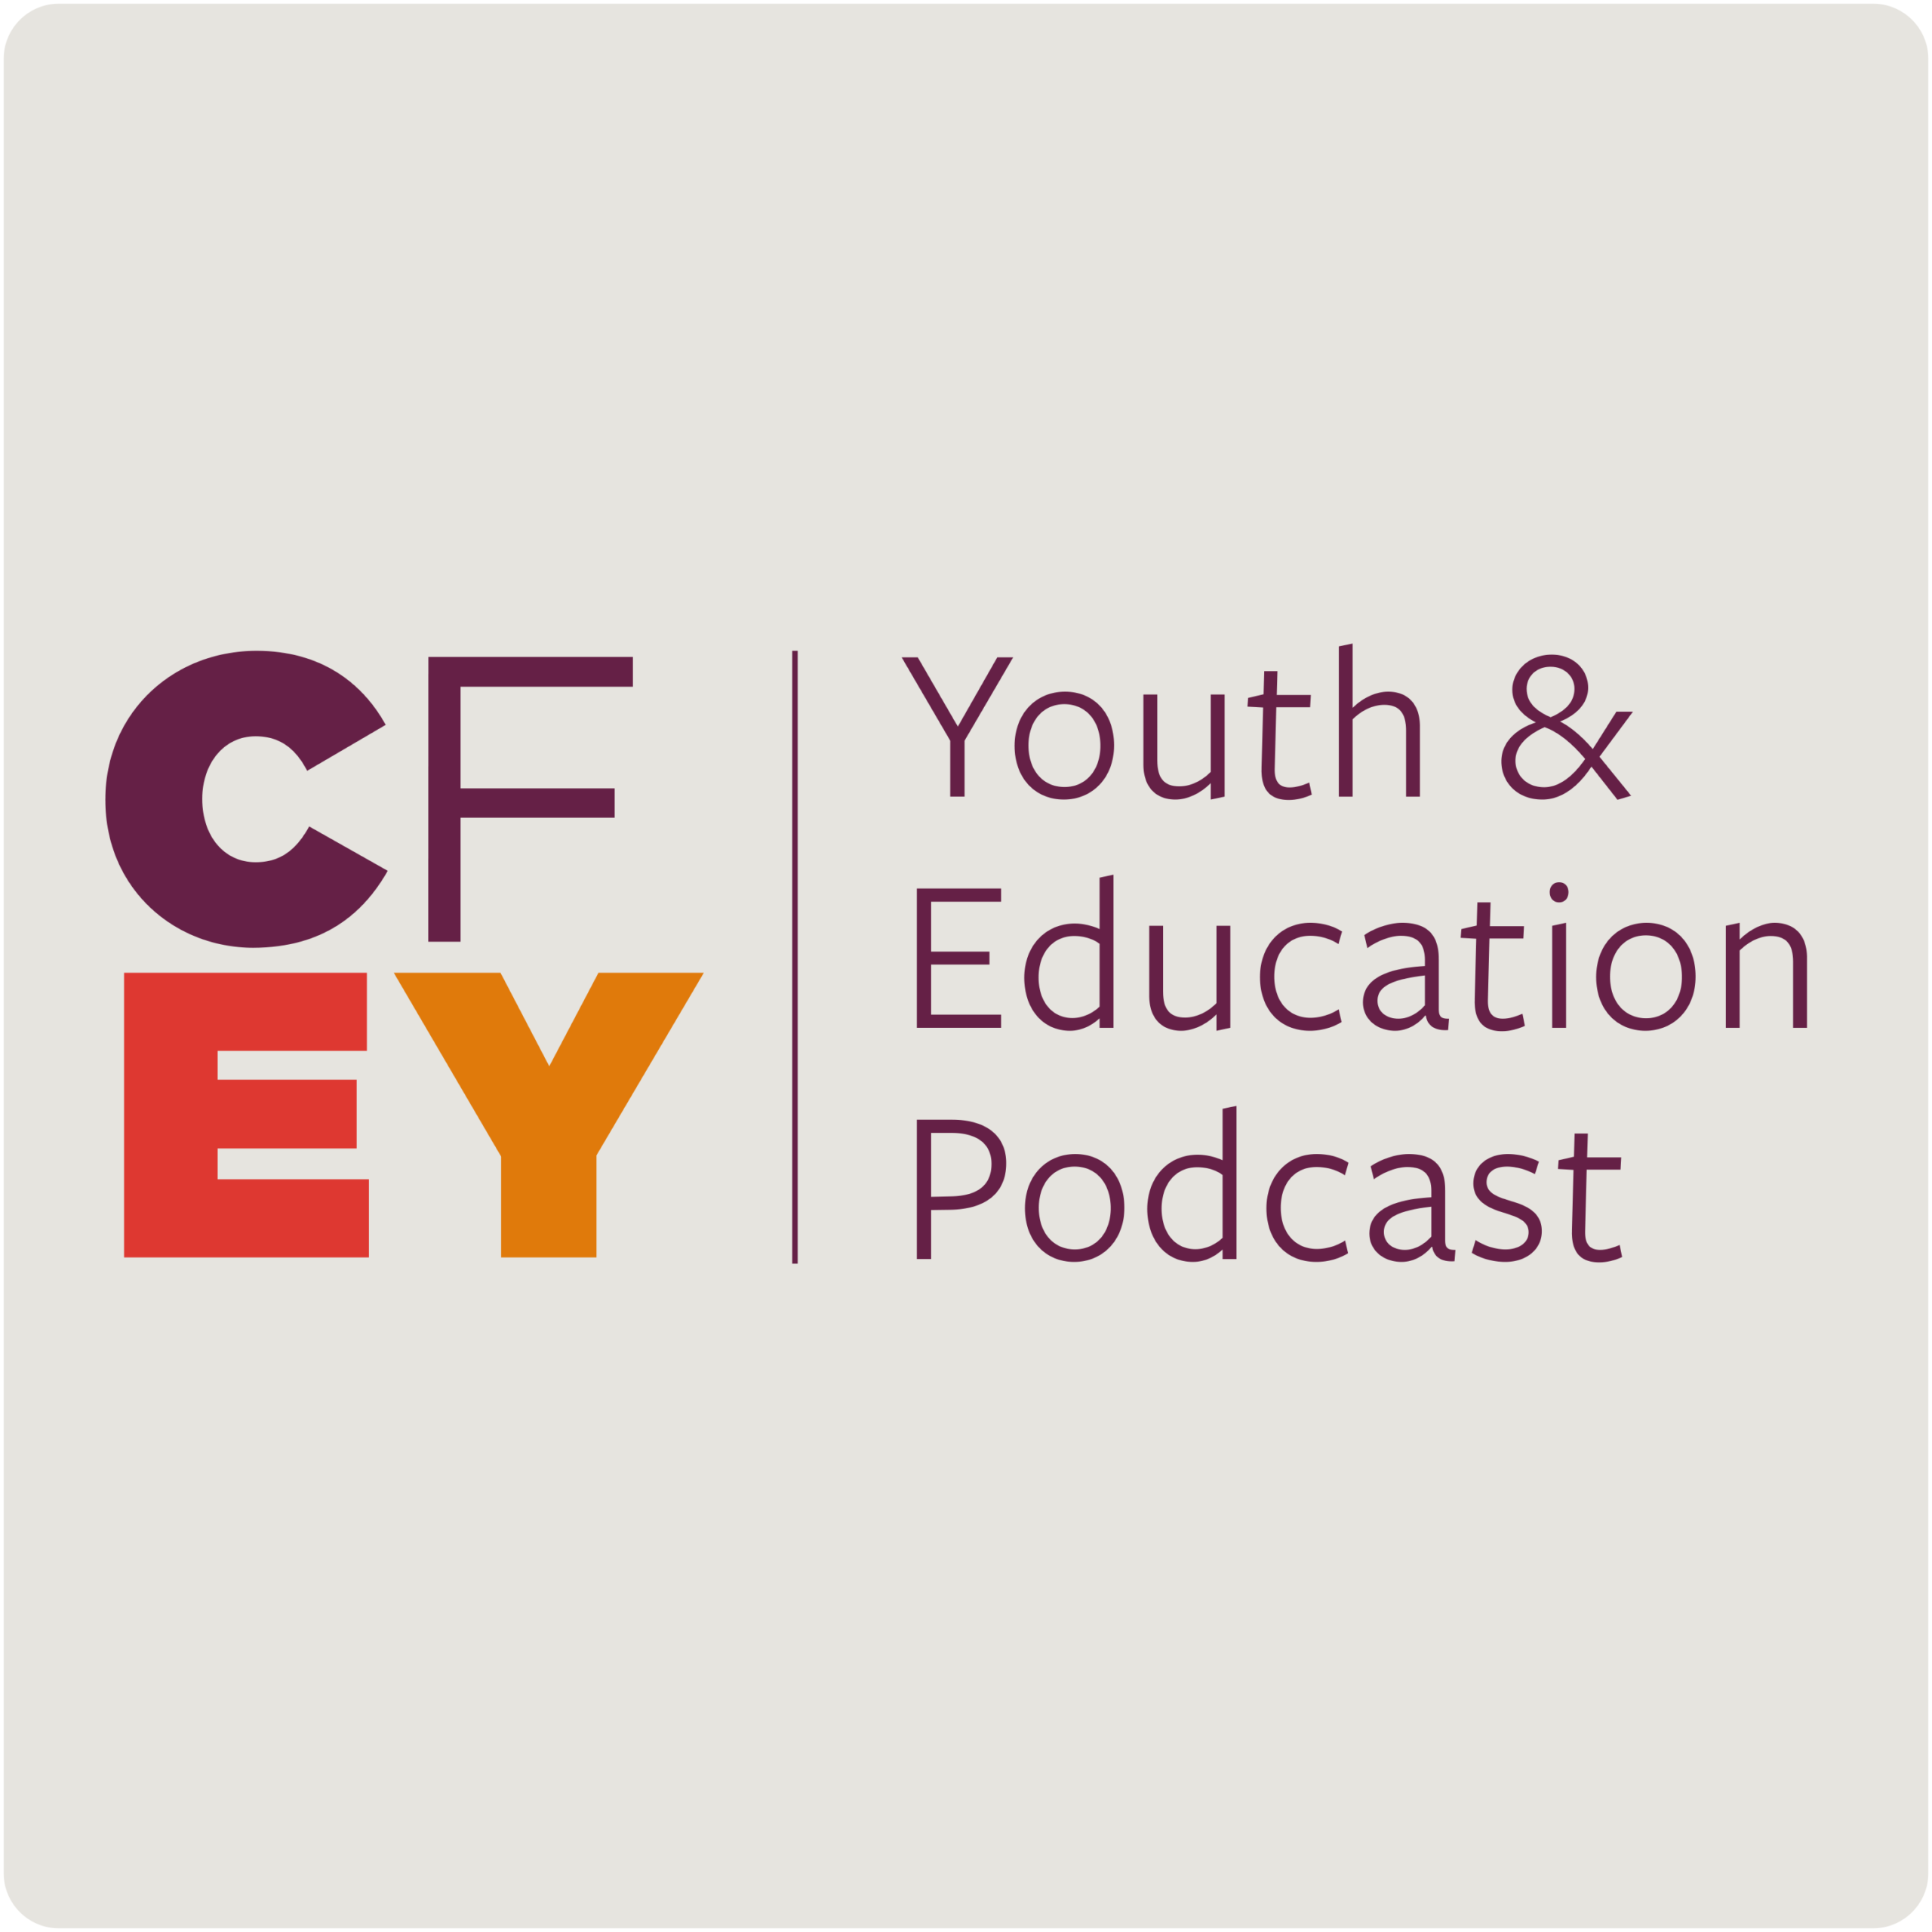 The CfEY Youth and Education Podcast